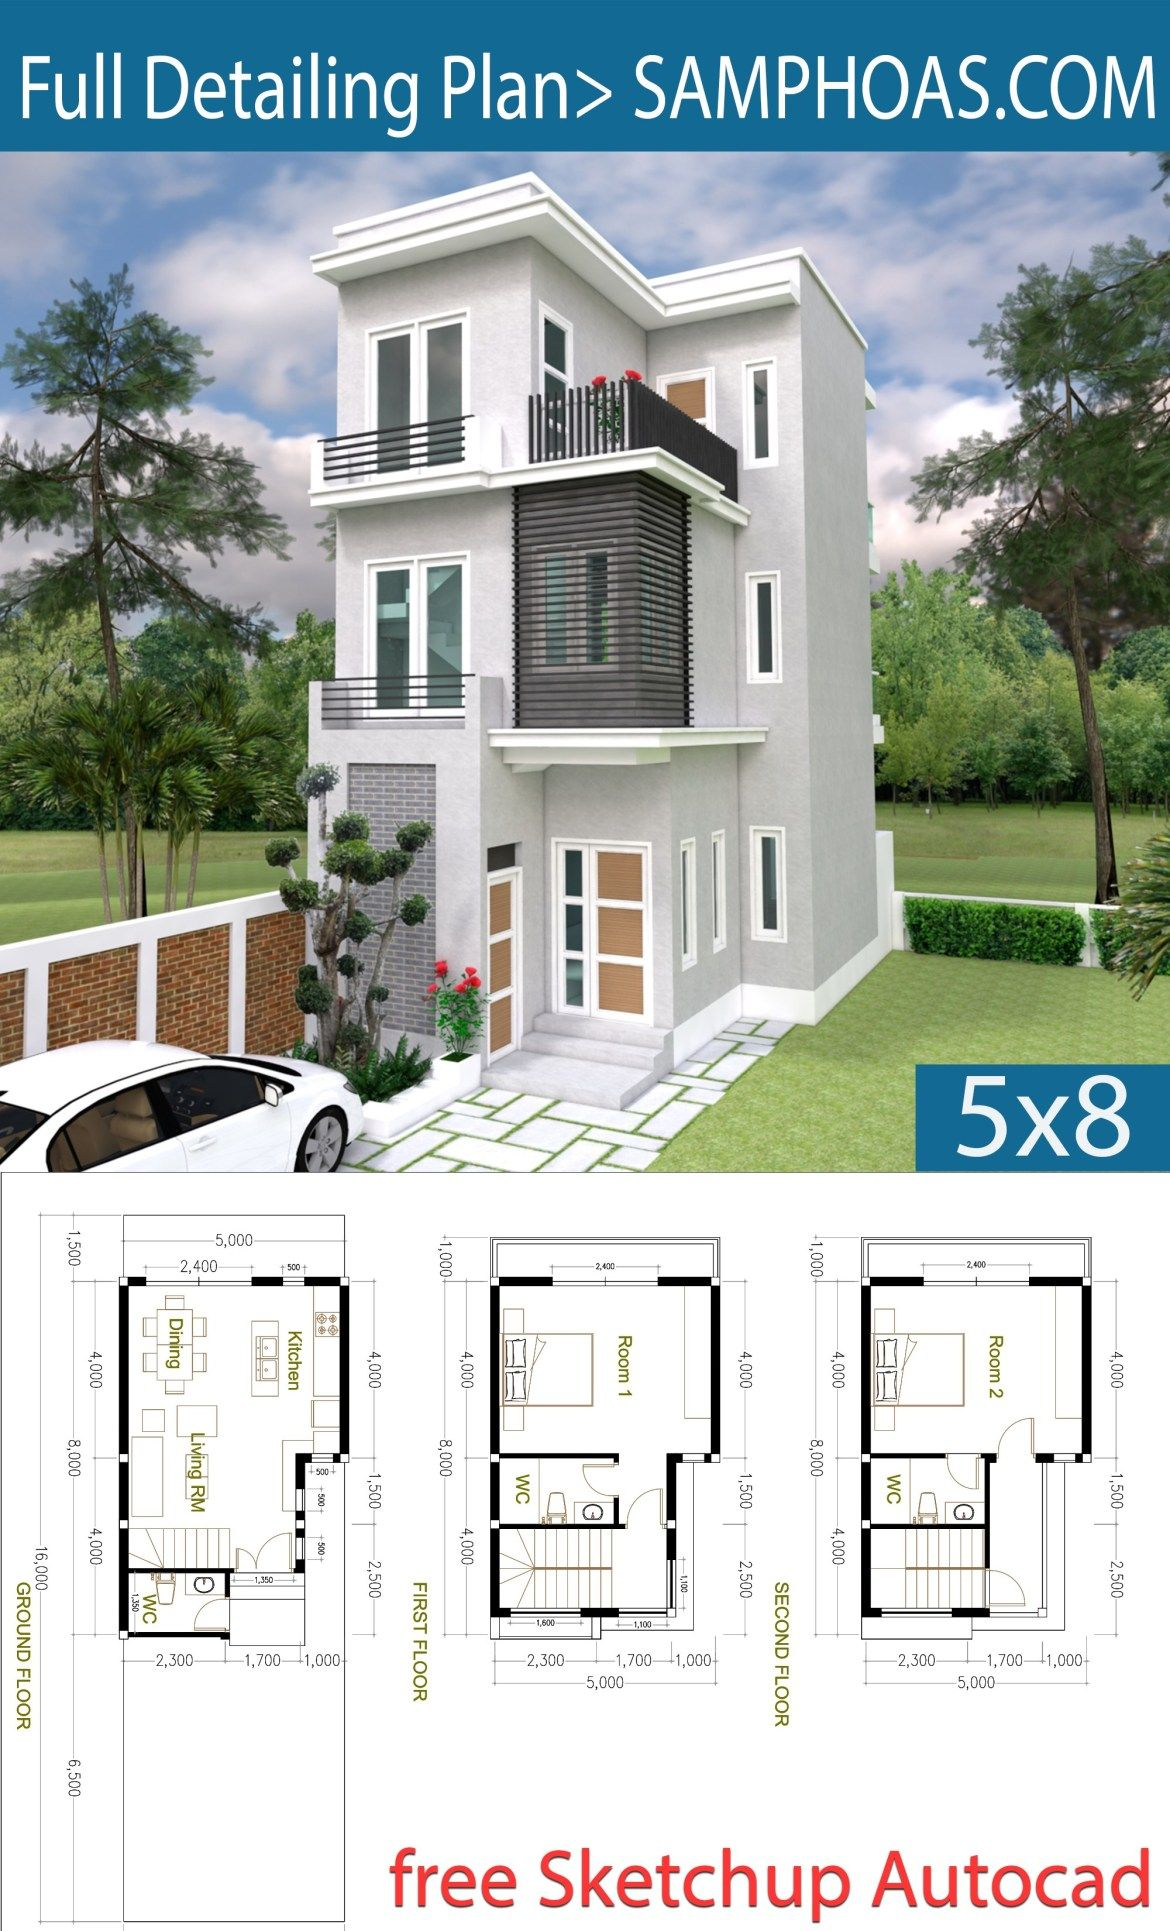 2 Bedroom Tiny Home Plan 5x8m Samphoas Plansearch Sims House Plans House Designs Exterior Tiny House Plans